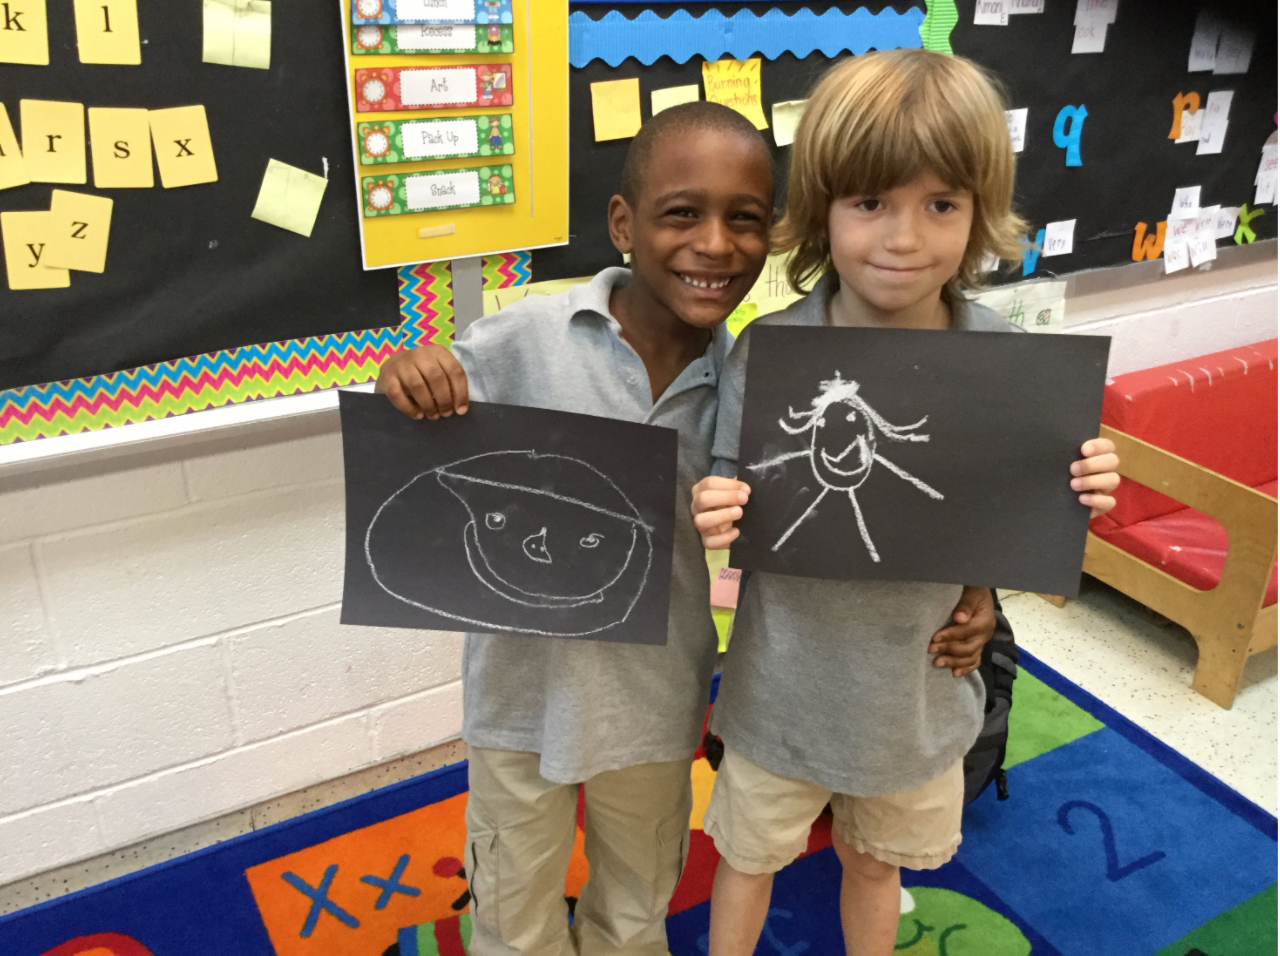 Two students and their drawings of smiling figures